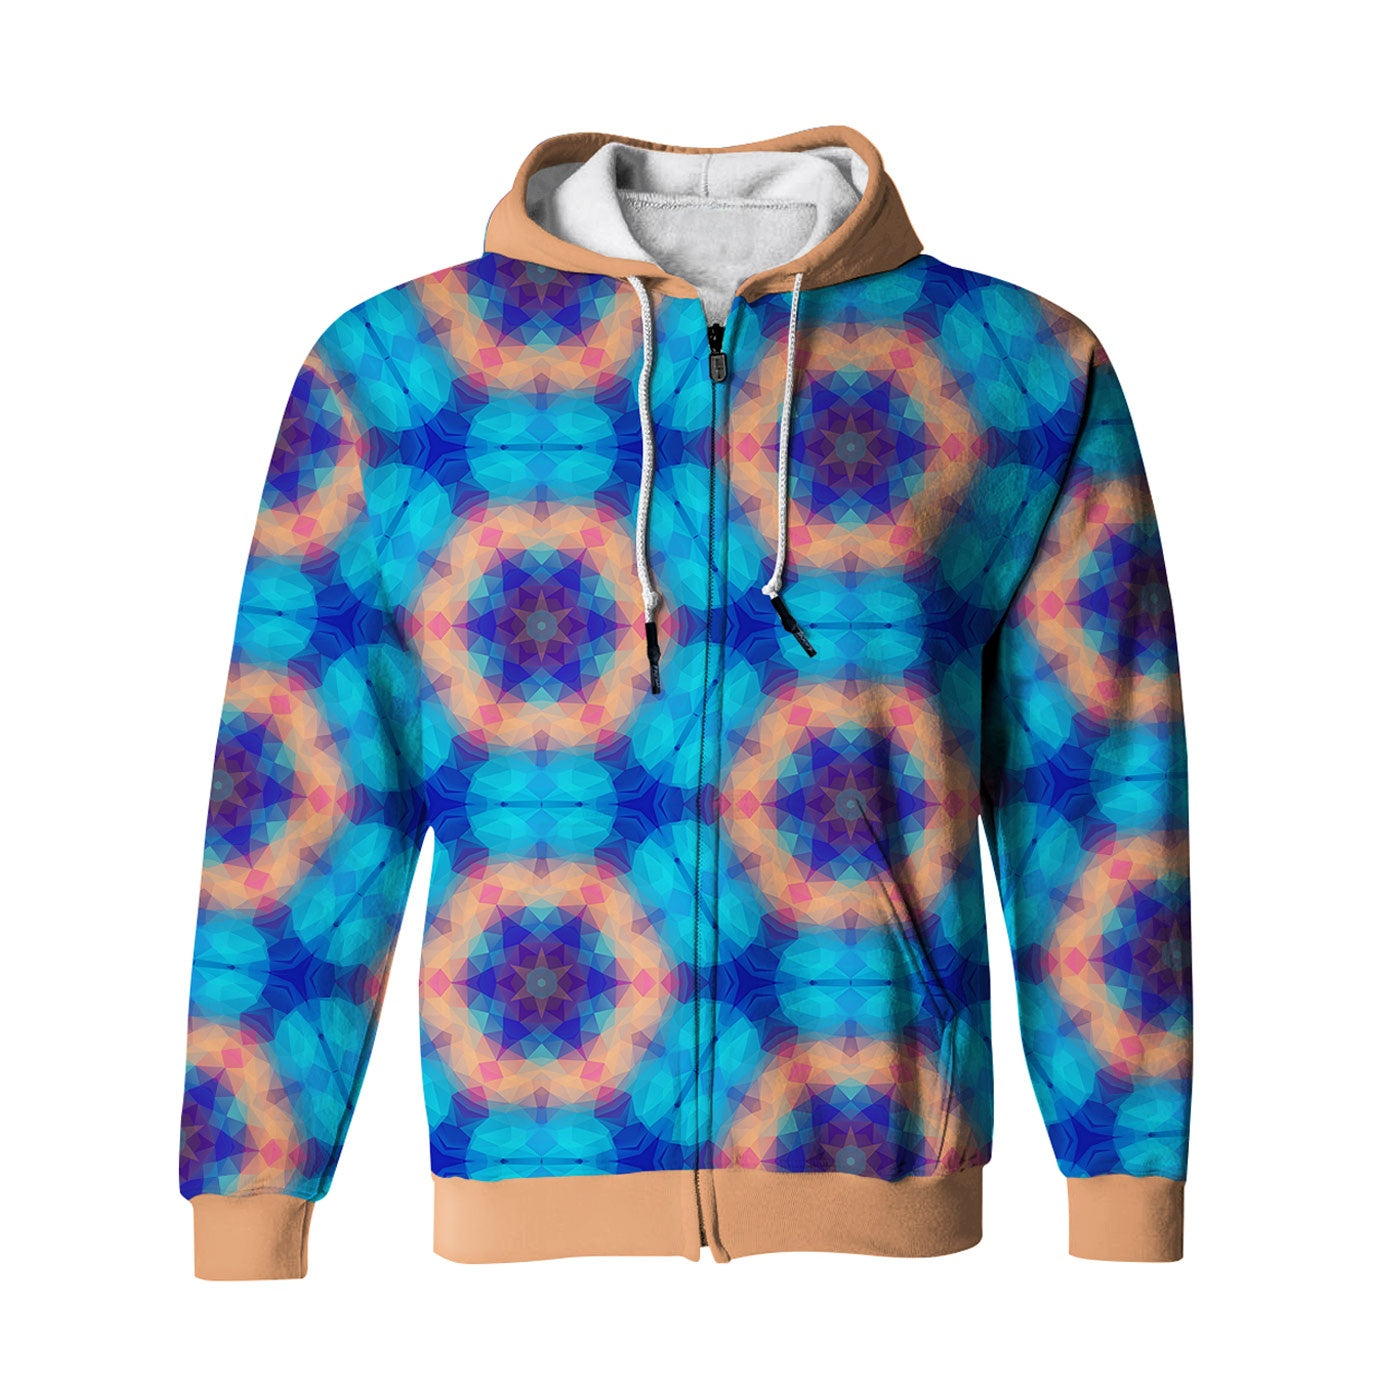 Blurry Day Zip Up Hoodie